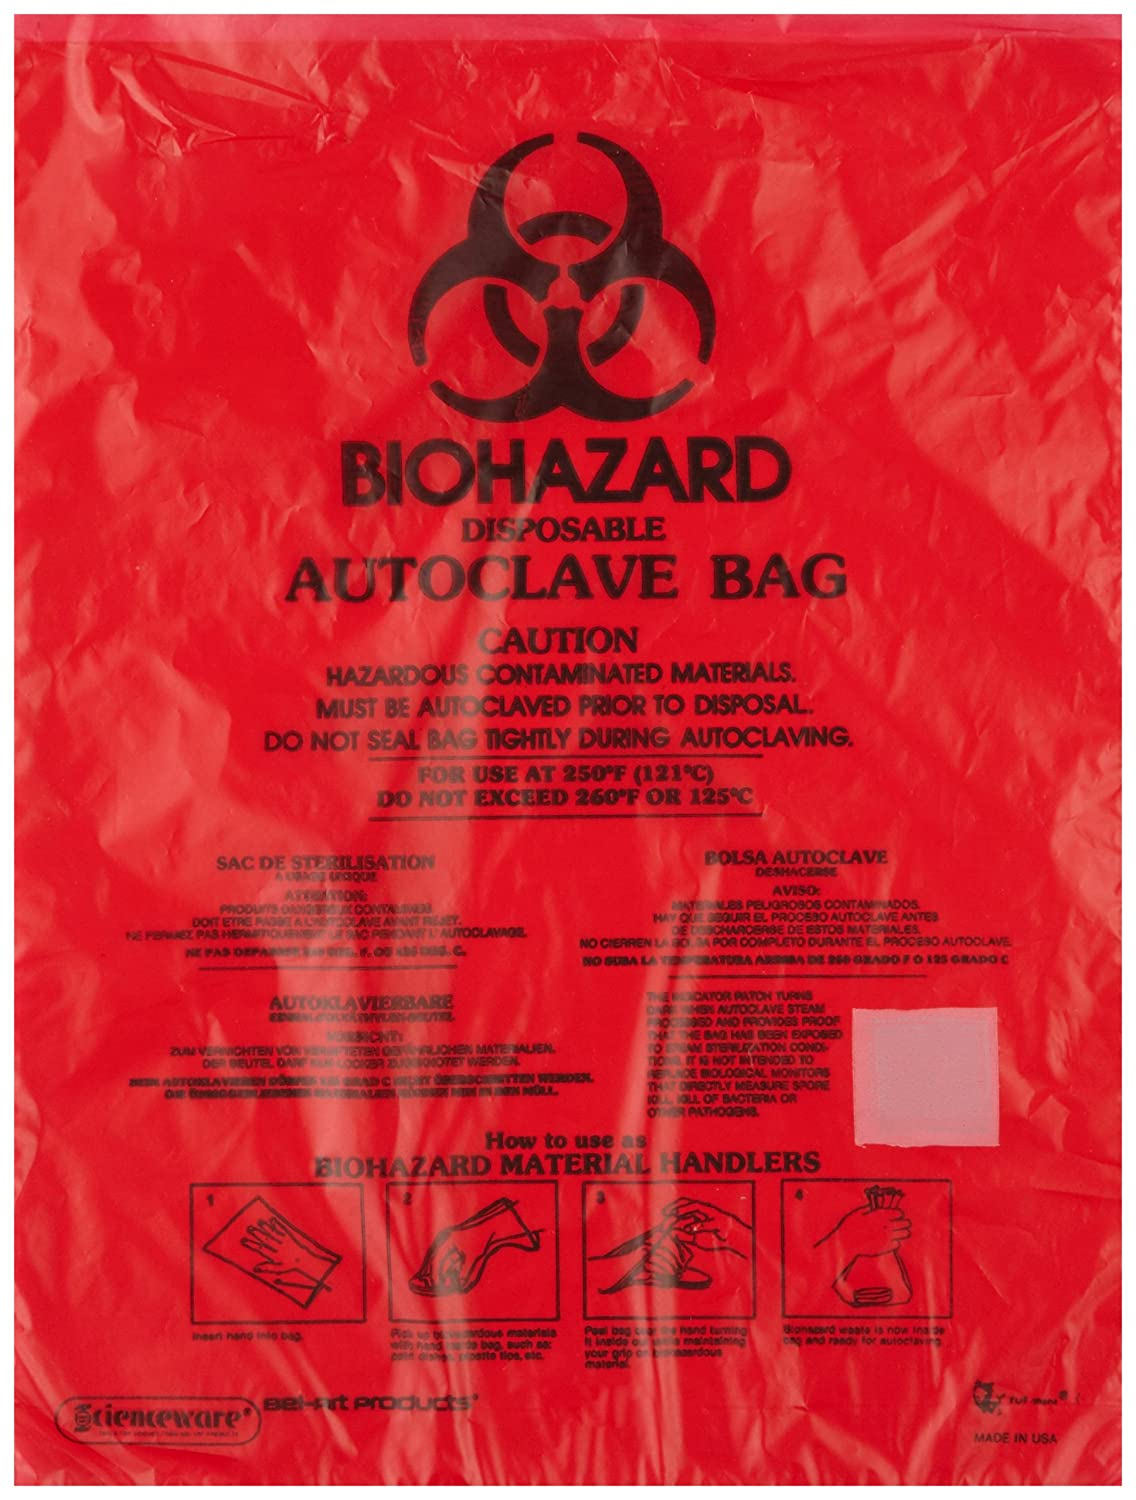 Amazon.com: bel-art f13166 – 0001 – bench-top Biohazard ...